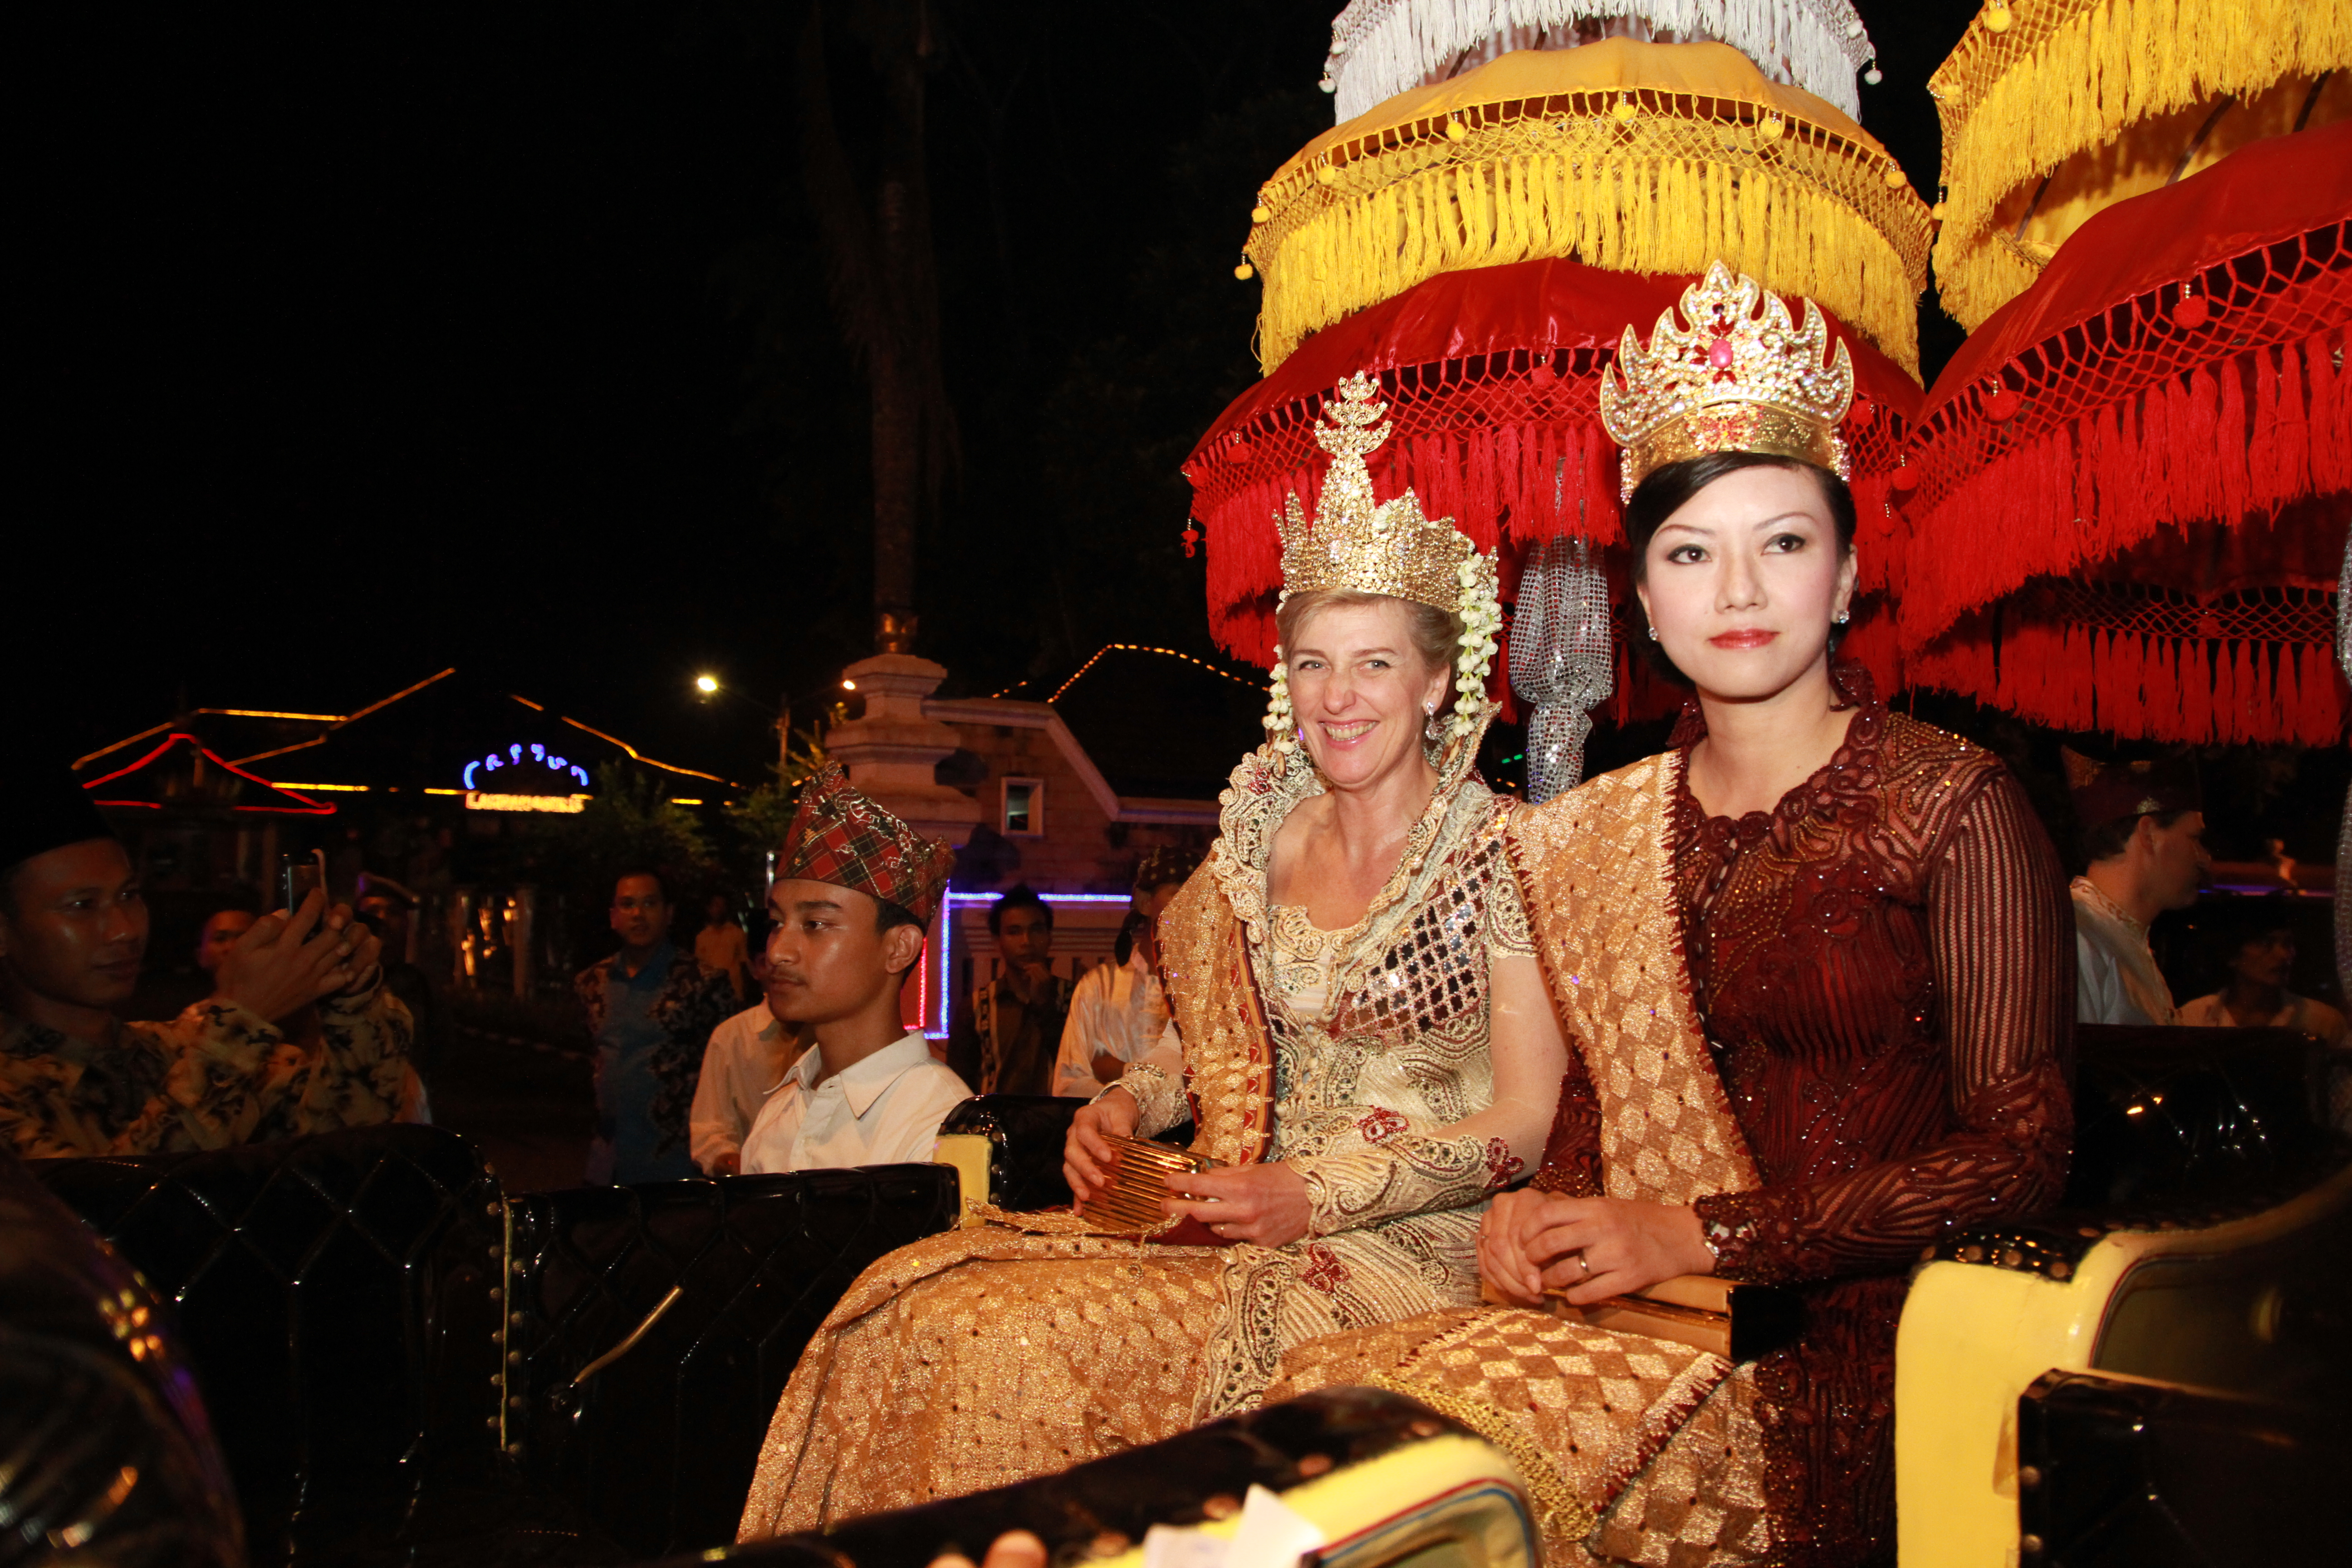 20120414 - JAKARTA, INDONESIA: This handout picture, distributed on Saturday 14 April 2012, shows Belgian Princess Astrid, Special Representative to the Roll Back Malaria Partnership, wearing a traditional dress as she sits next to Mrs Pitka Menoza, cife of the vice-governor, during a traditional ceremony to welcome Princess Astrid as a member of the community during a field visit to Bandar Lampung, with Roll Back Malaria (RBM), in Indonesia. RBM is a partnership of the World Health Organisation (WHO), UNICEF, the Global Fund and the Indonesia's Ministry of Health and aims at battling the spread of malaria. BELGA PHOTO HANDOUT ROLL BACK MALARIA